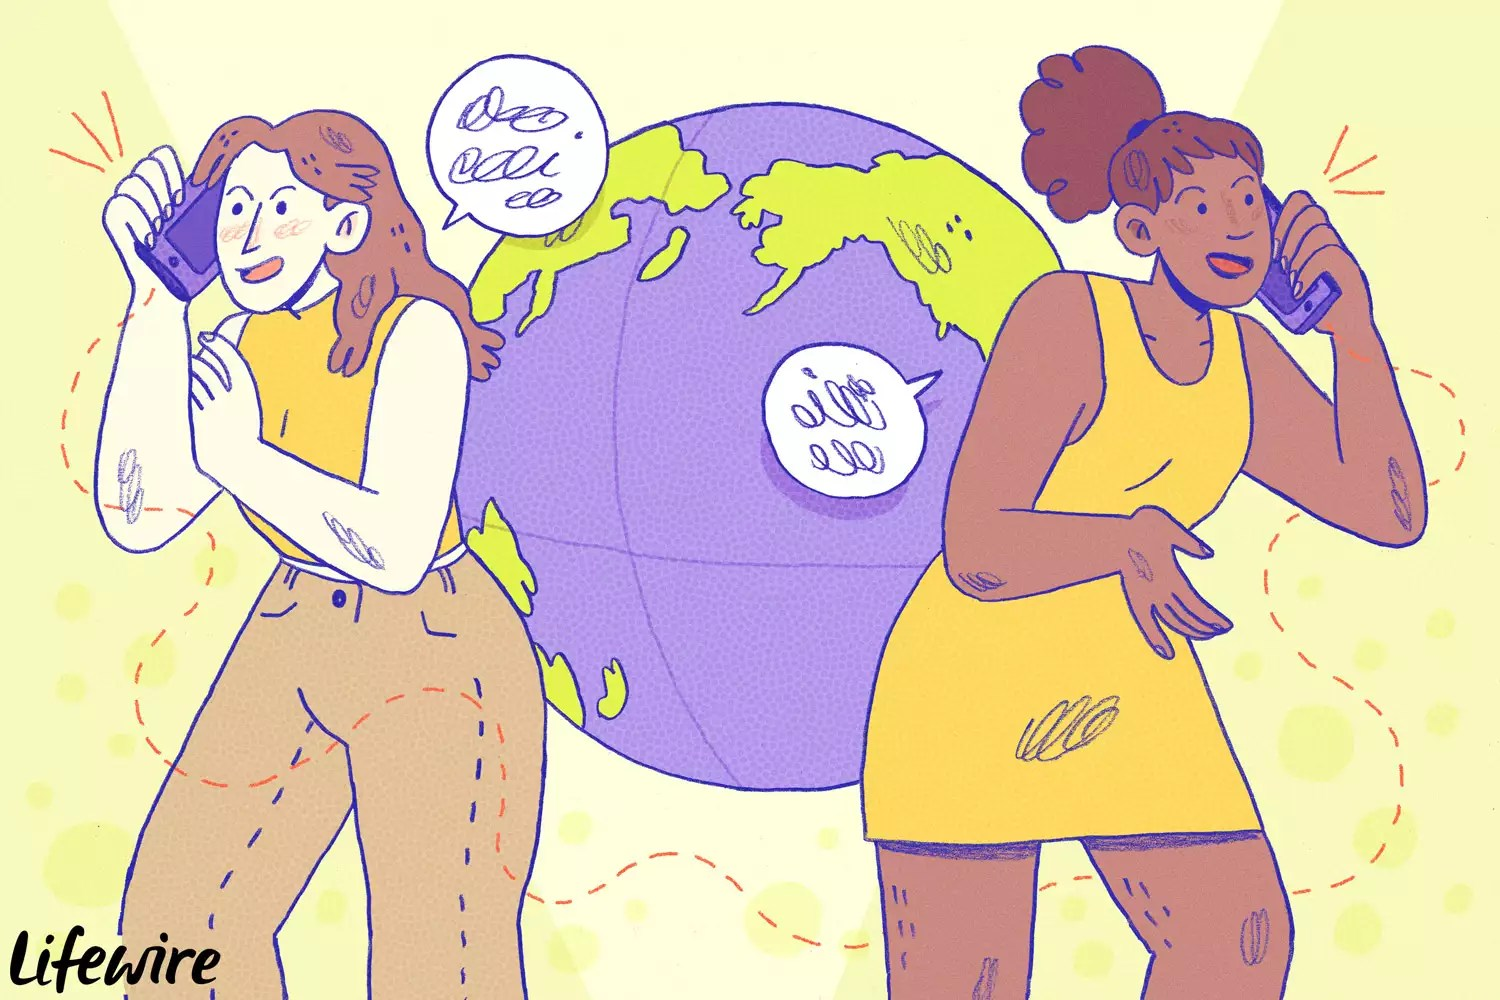 An illustration of women talking on the phone on opposite sides of the globe.